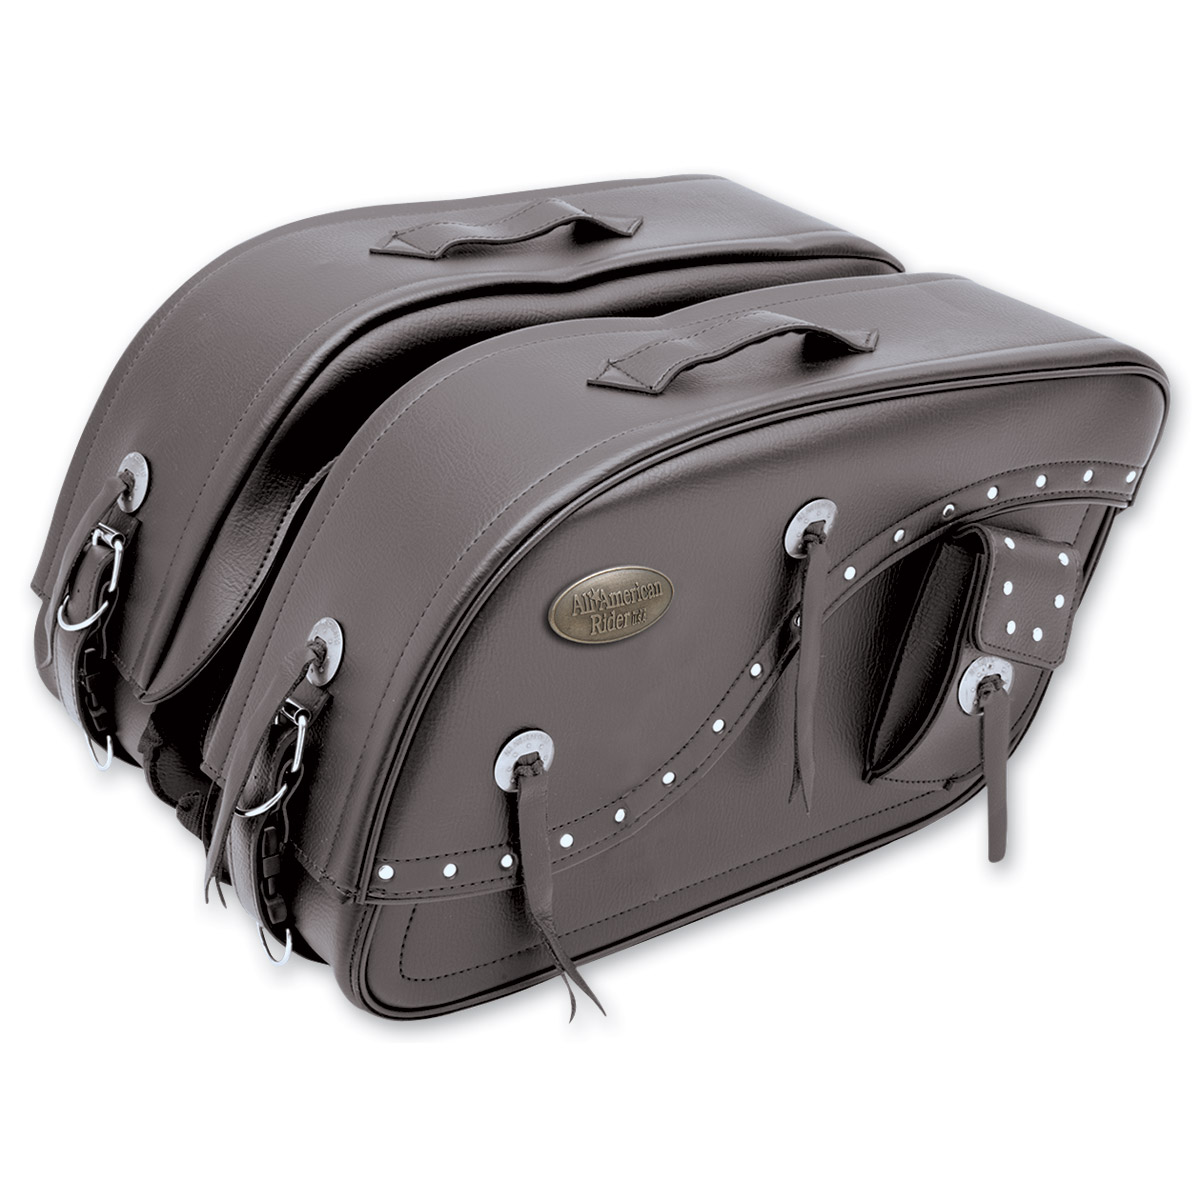 All American Rider Flap-Over Futura 2000 Super Size Saddlebags